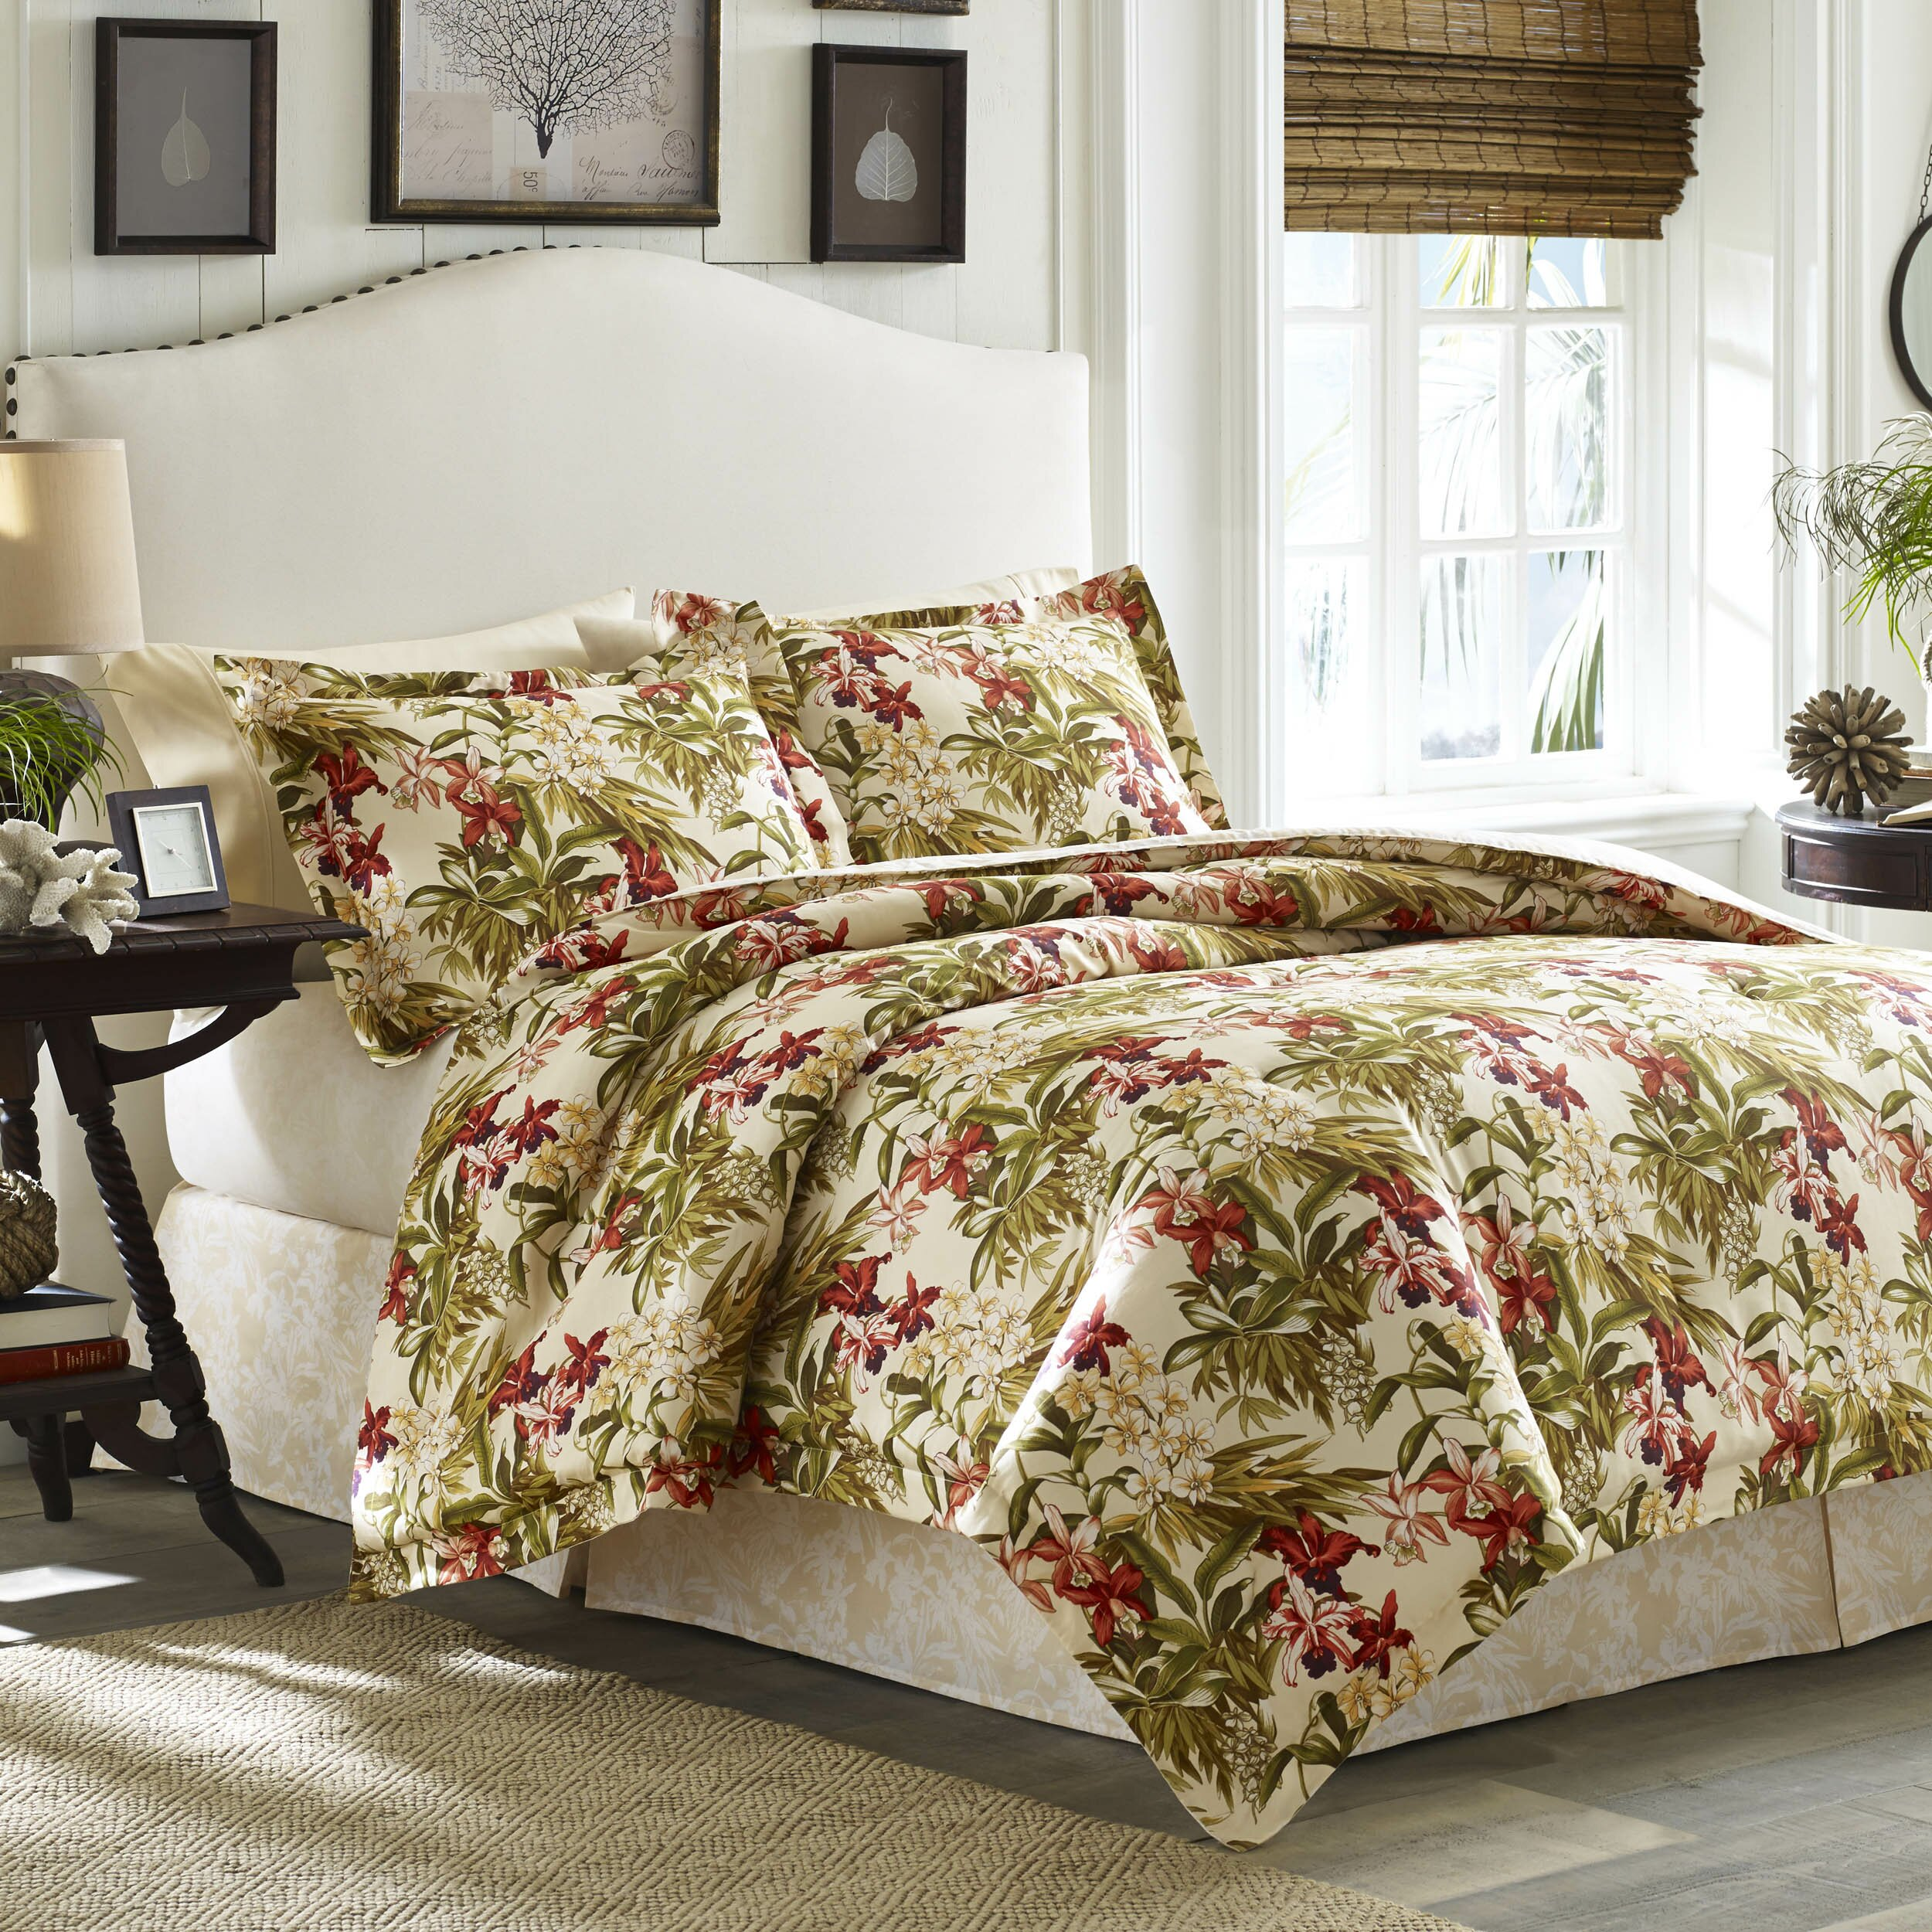 Tommy bahama bedding daintree tropic duvet cover Tommy bahama bedding